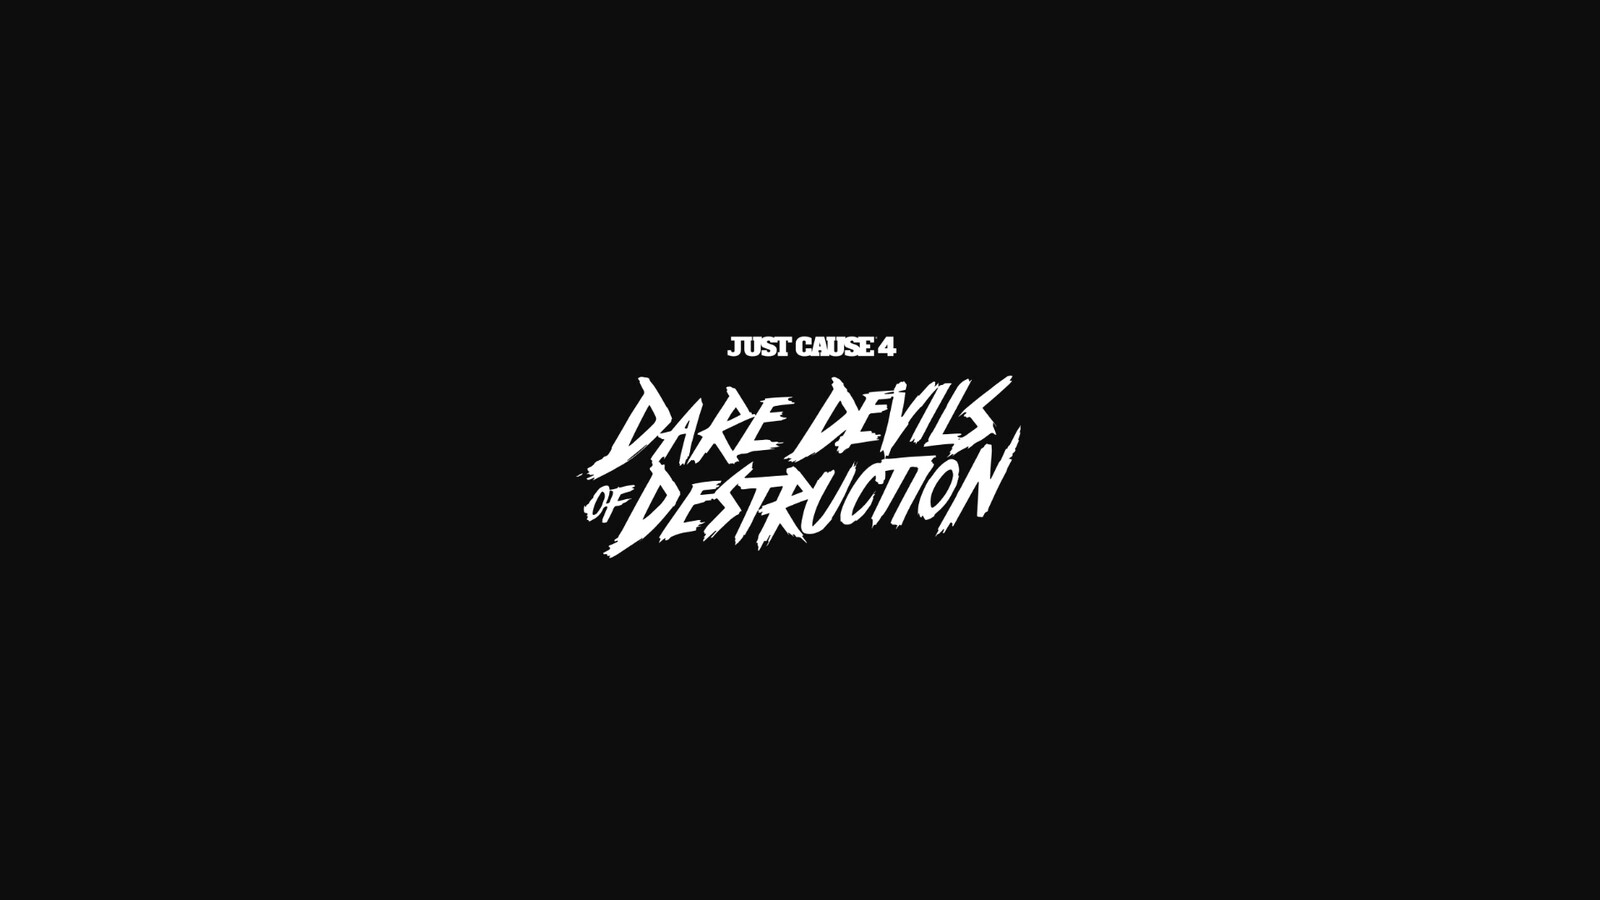 Just Cause 4: Dare Devils of Destruction Logo